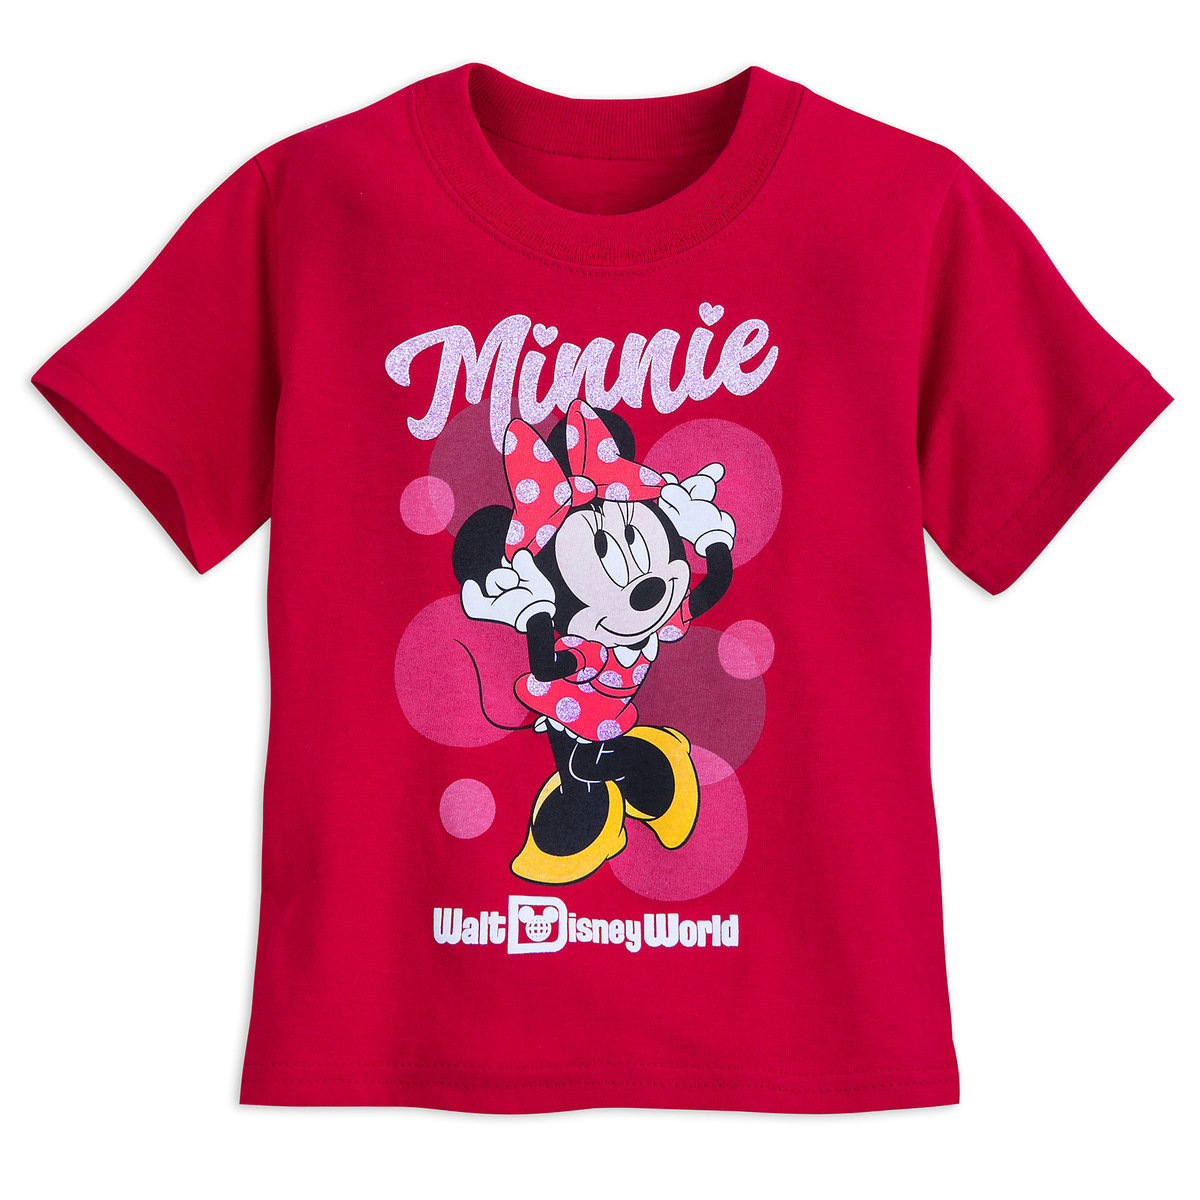 18dfbc0dcef4 Product Image of Minnie Mouse Glitter T-Shirt for Girls - Walt Disney World  #